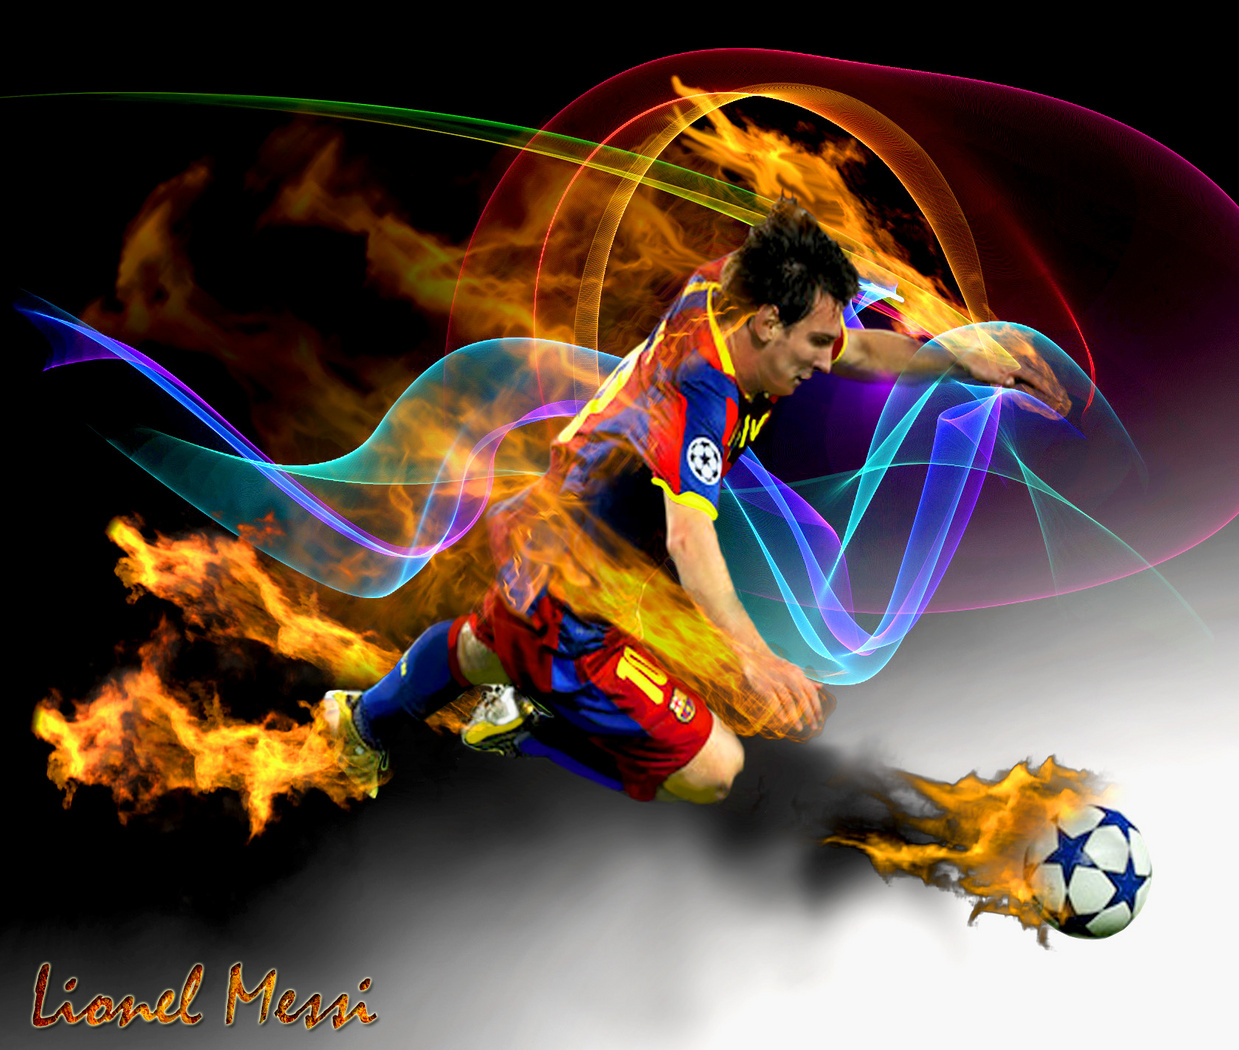 Lionel Messi Latest HD Wallpapers 2012-2013